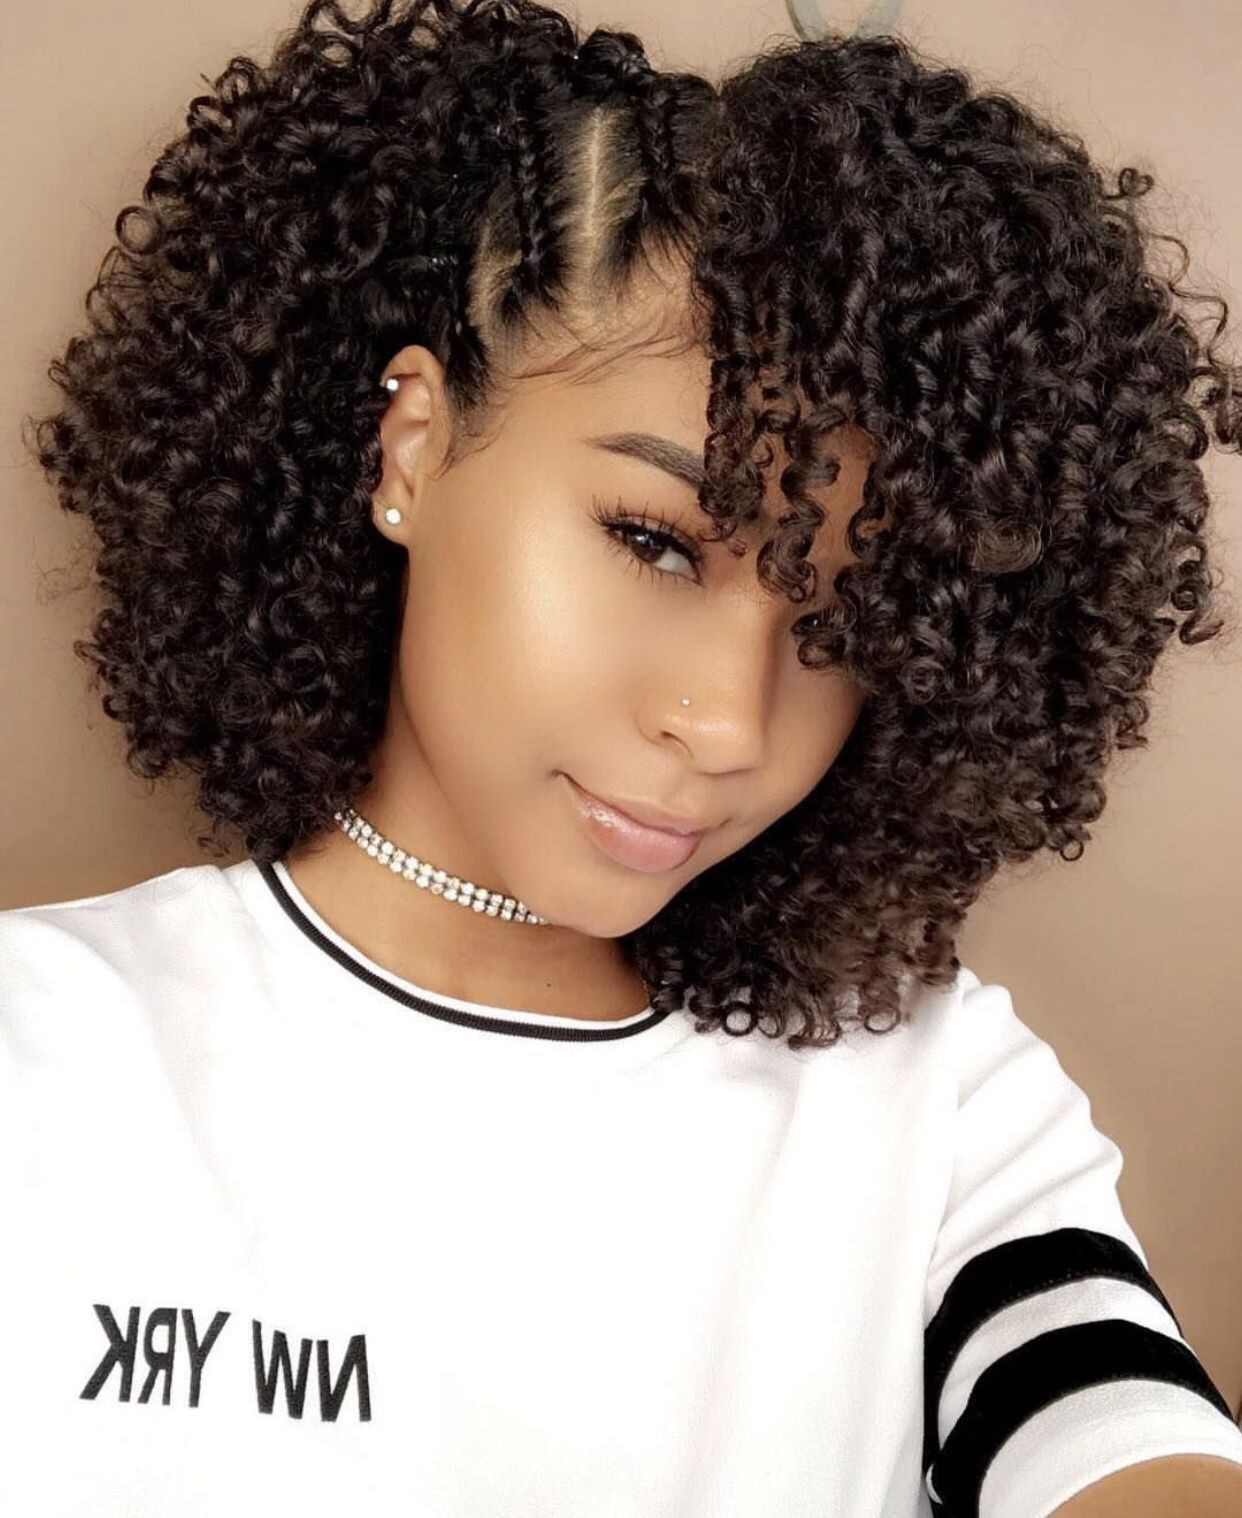 Youtube Naturally Mystique Pinterest Champagnemamii Jae Haircareforcurlyhair Haircar Natural Hair Styles Curly Hair Styles Naturally Curly Hair Styles